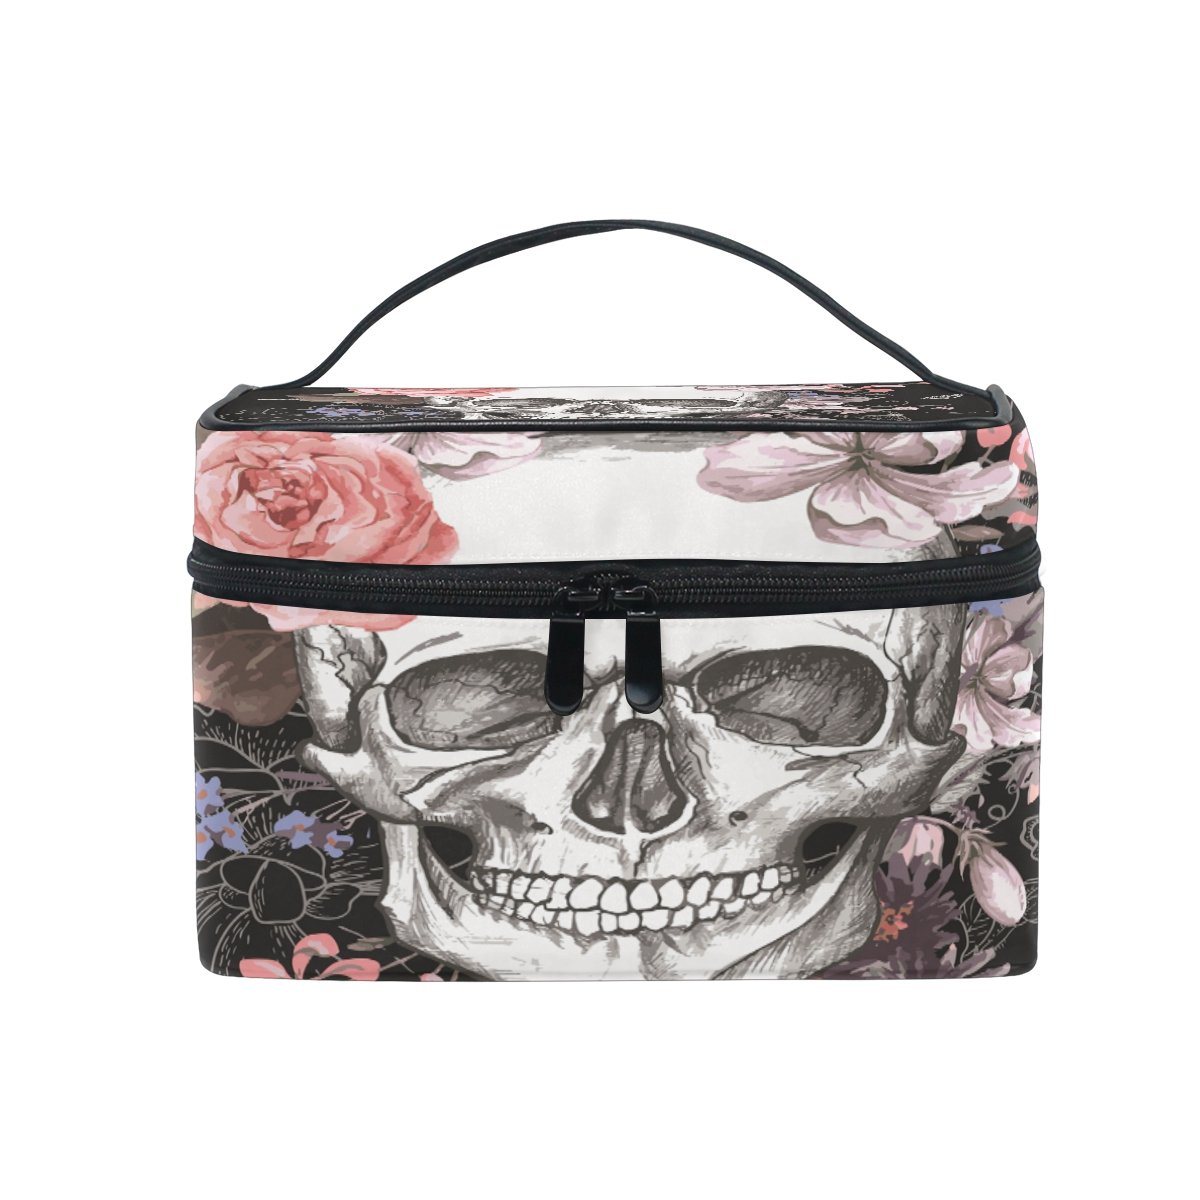 Makeup Bag Rose Skull Travel Cosmetic Bags Organizer Train Case Toiletry Make Up Pouch